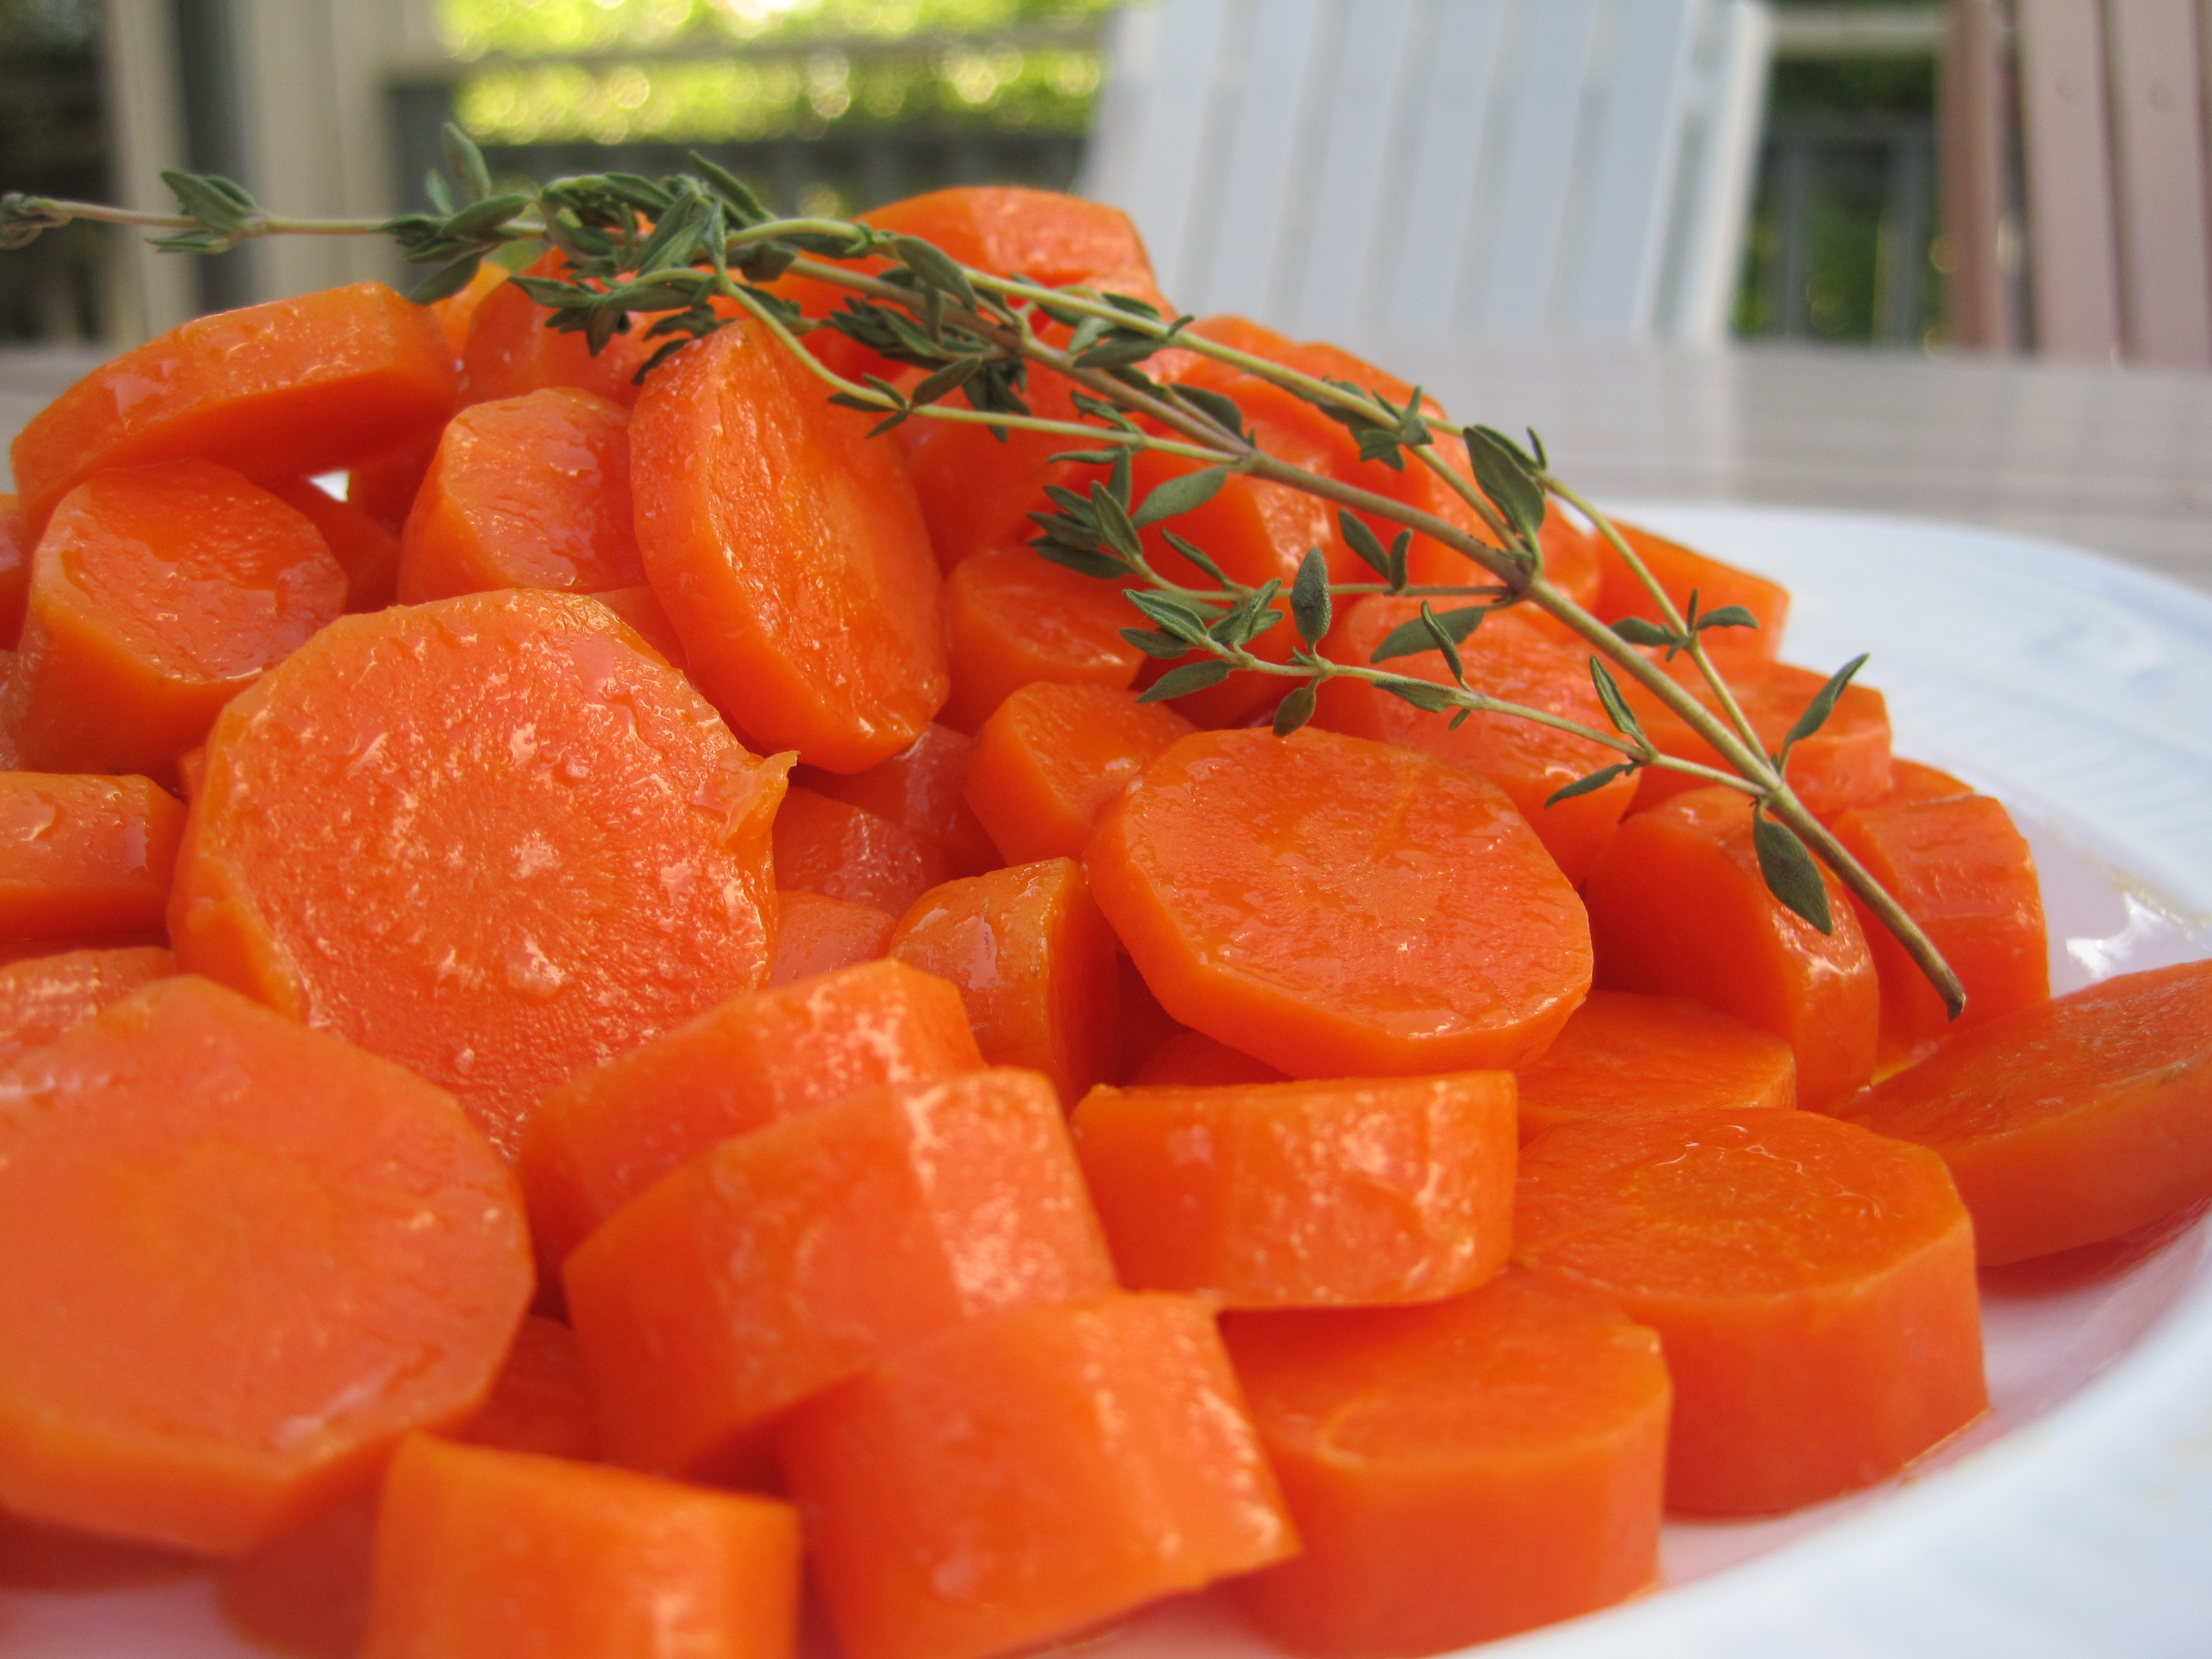 How long does it take to cook carrots